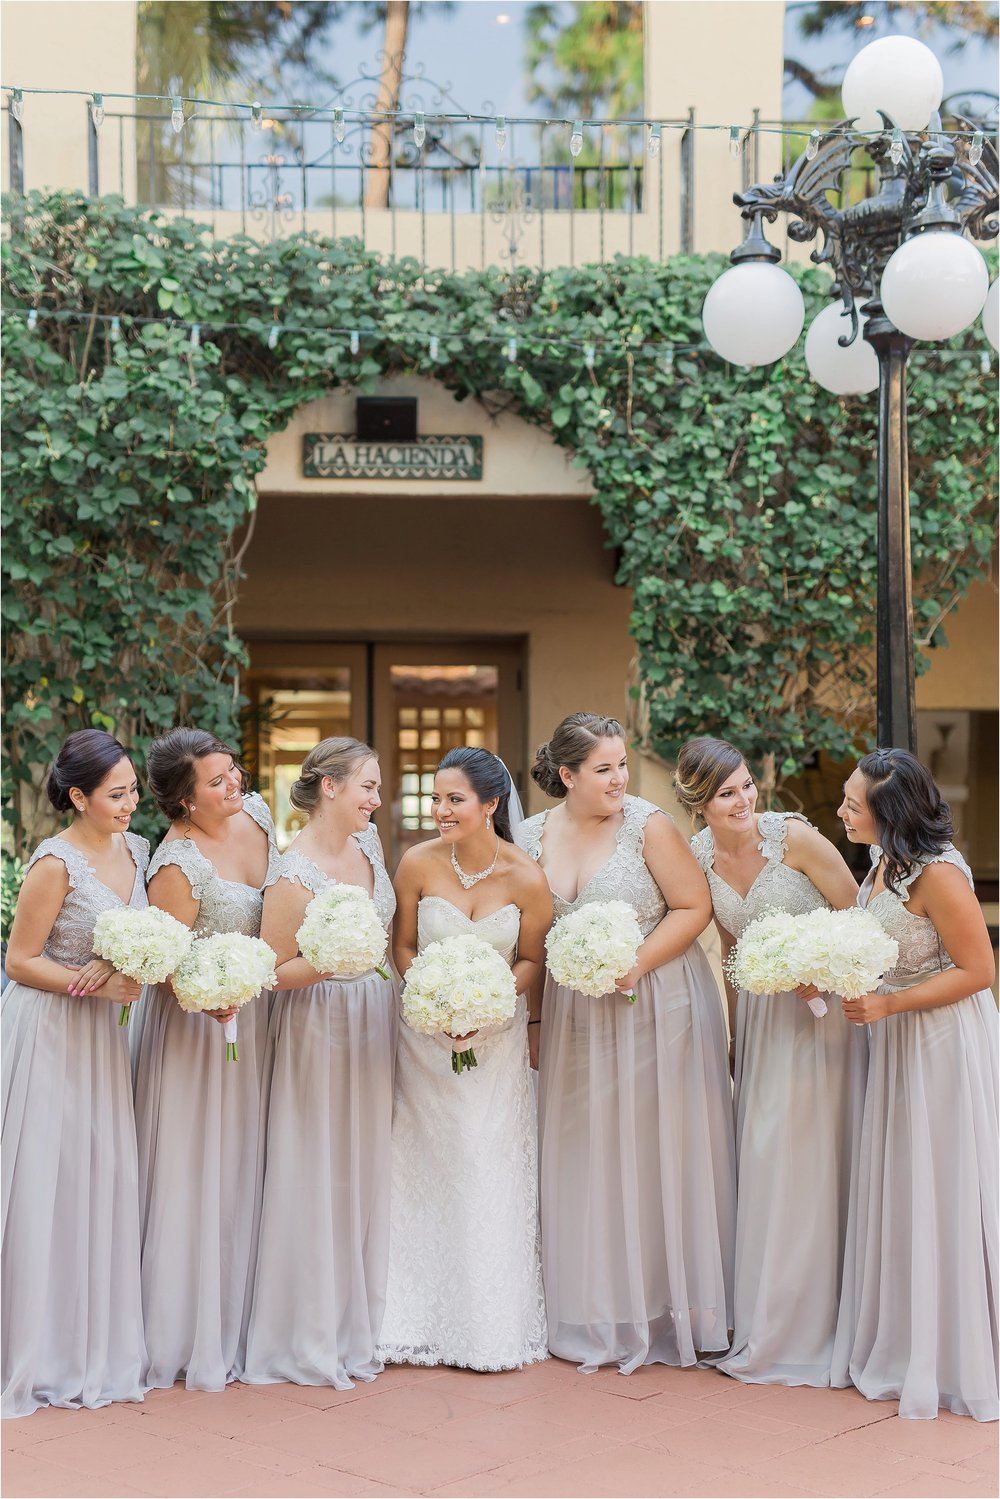 Gorgeous Light Grey Bridal Party with White Florals of Hydrangea and Bridal Bouquet of White Roses